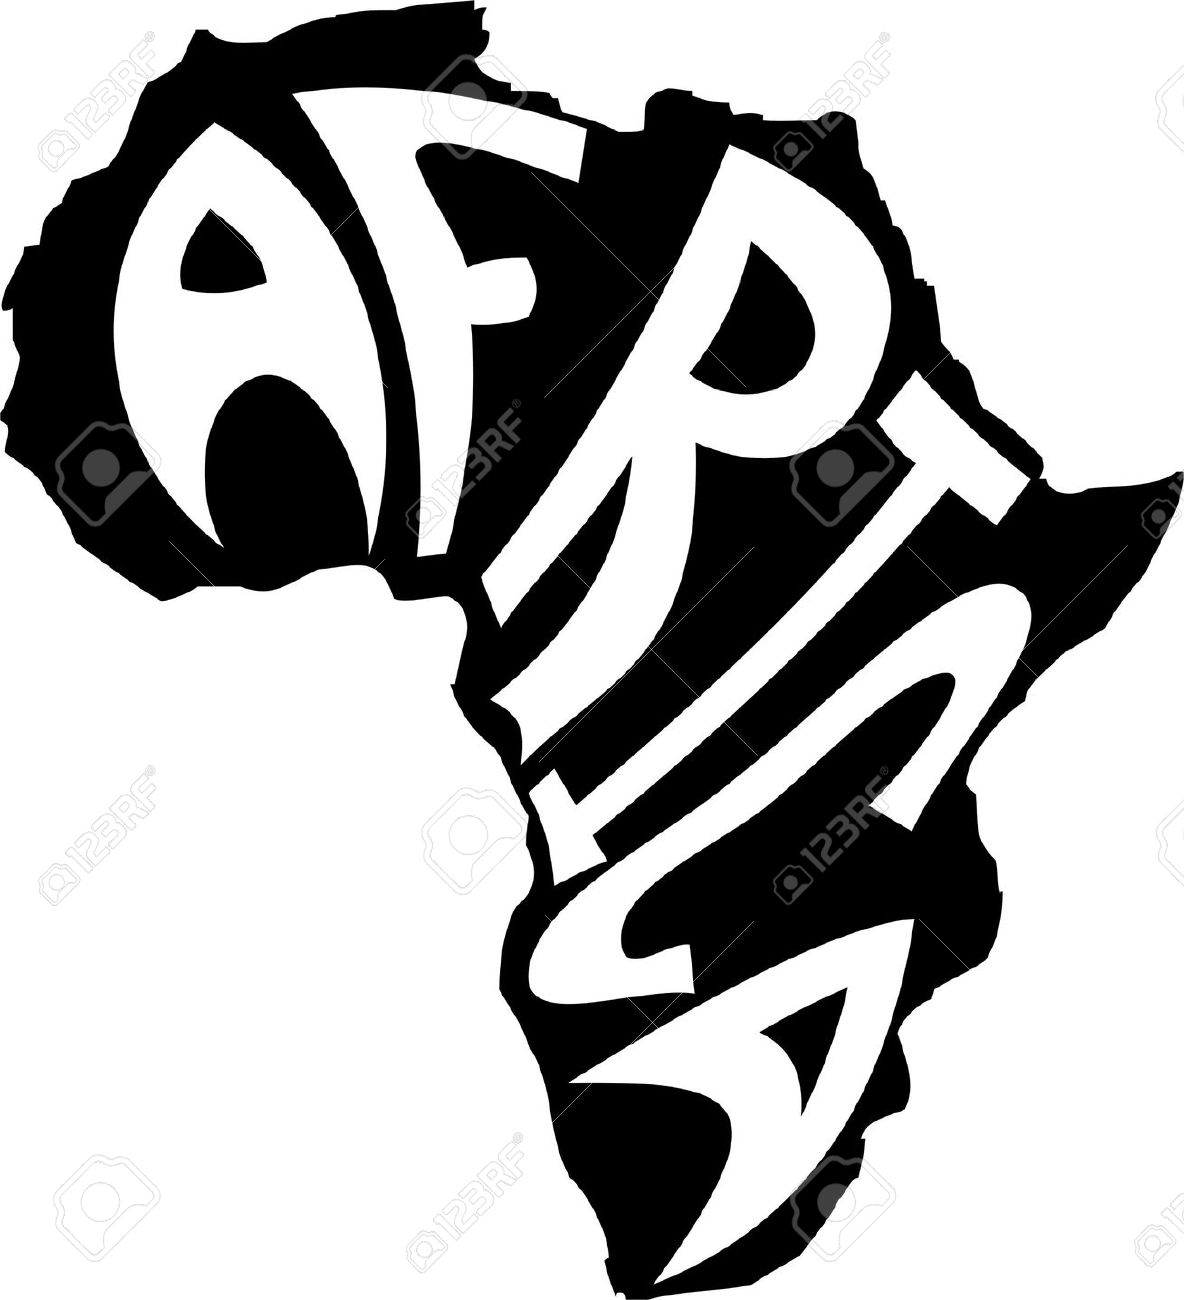 Awesome africa design digital. African clipart black and white